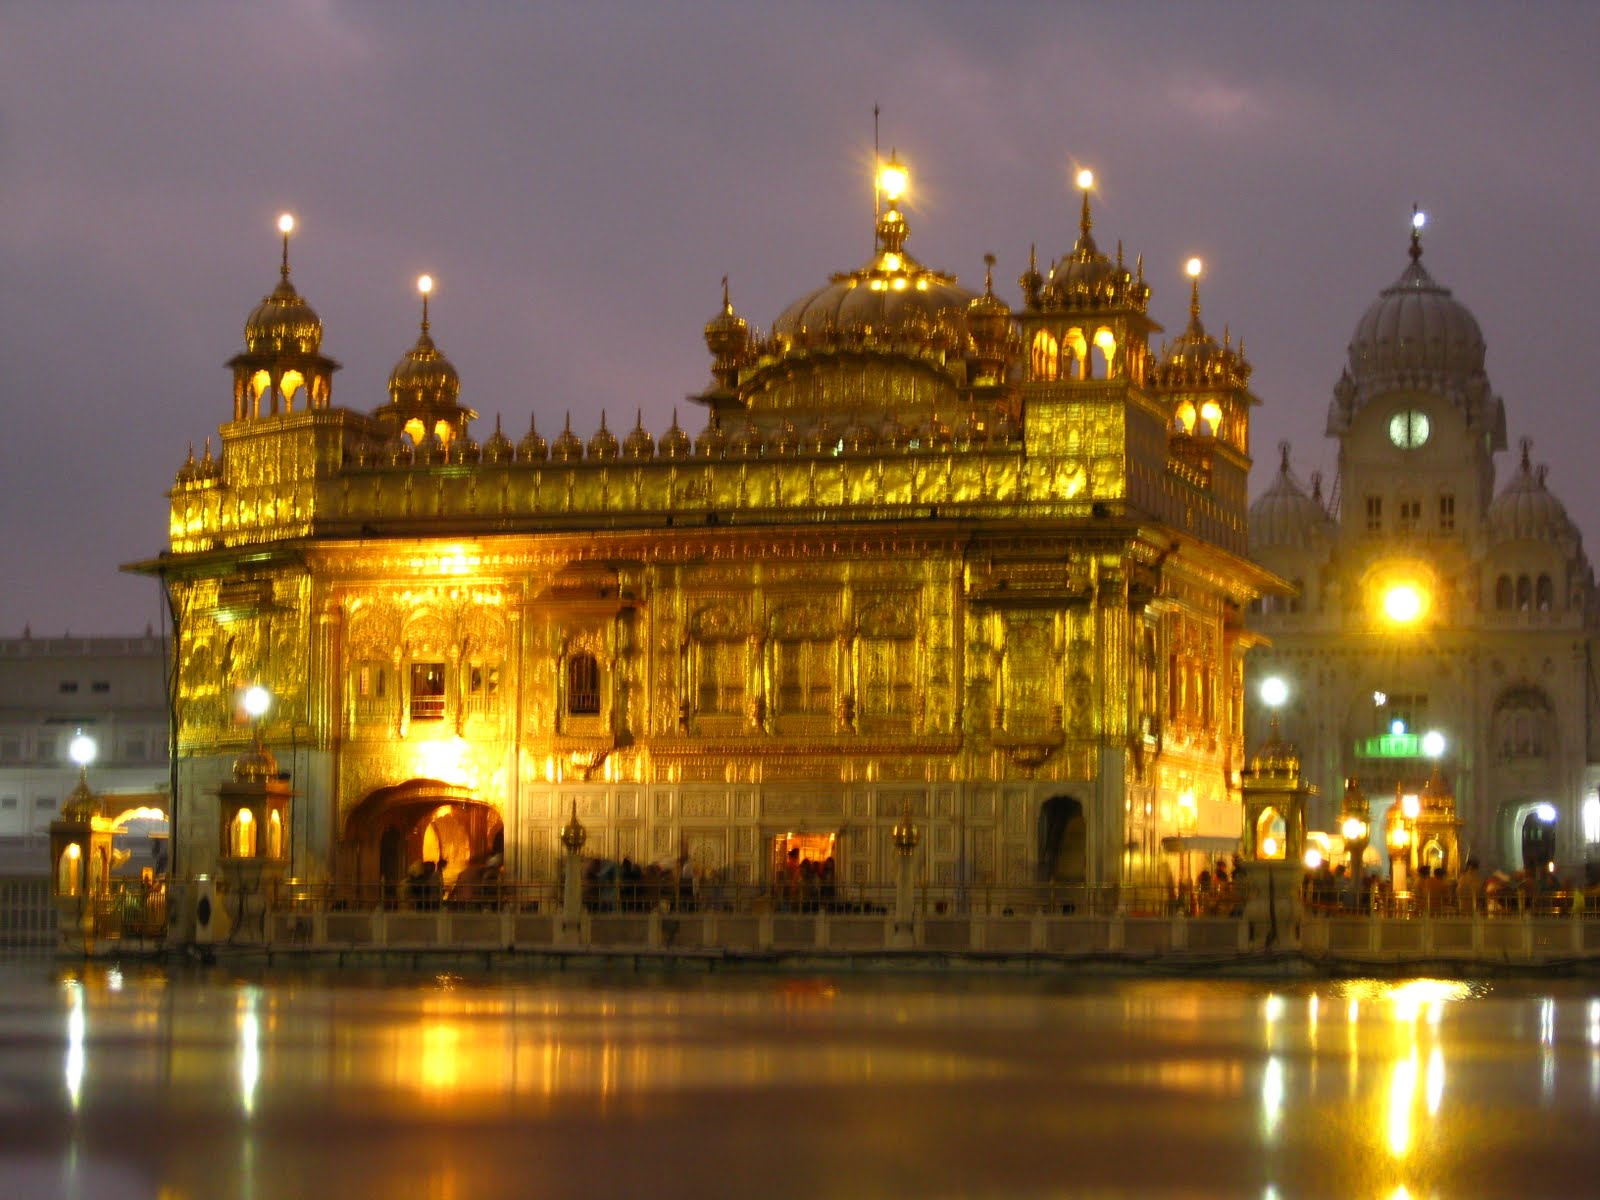 Download amritsar golden temple wallpaper 1600x1200 77 - Golden temple images hd download ...